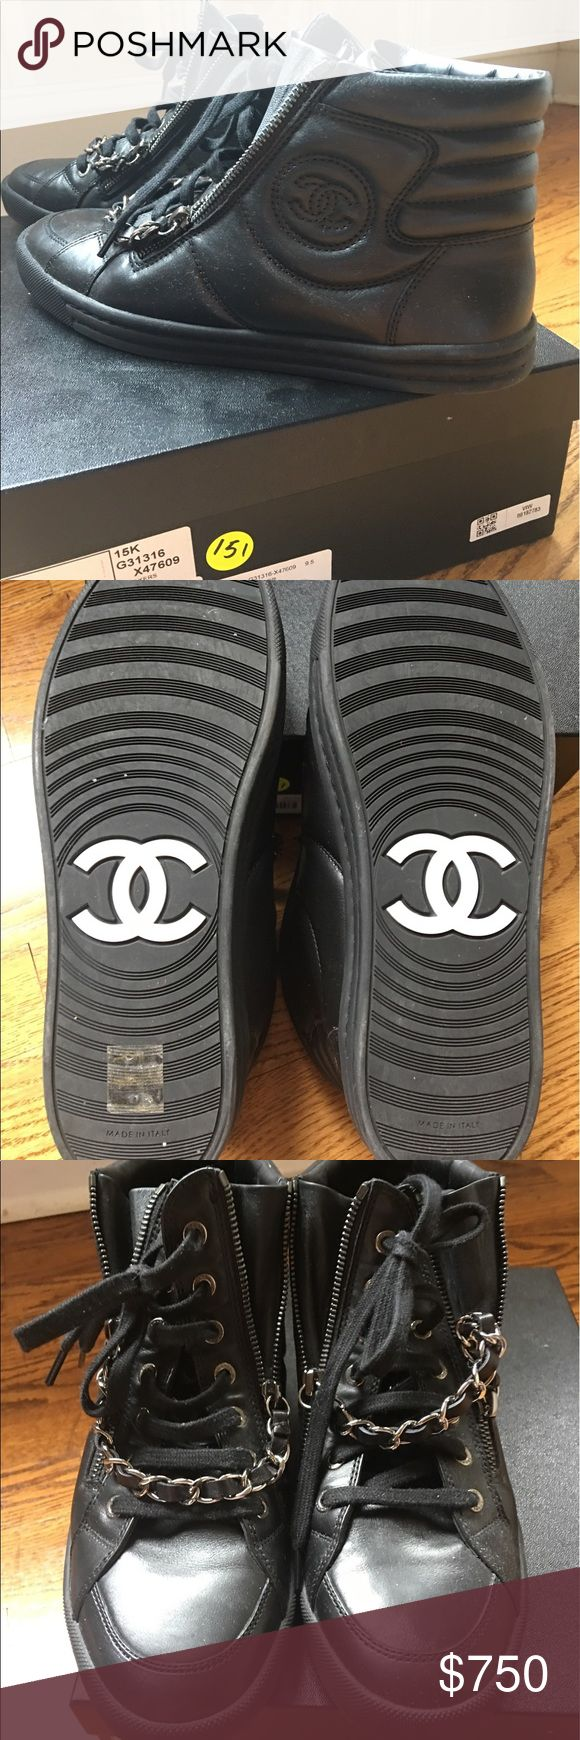 Chanel Sneakers 100% authentic. Only worn twice. Price is pretty firm so low offers will not be considered. What you see is what you get! Size 39.5. CHANEL Shoes Sneakers